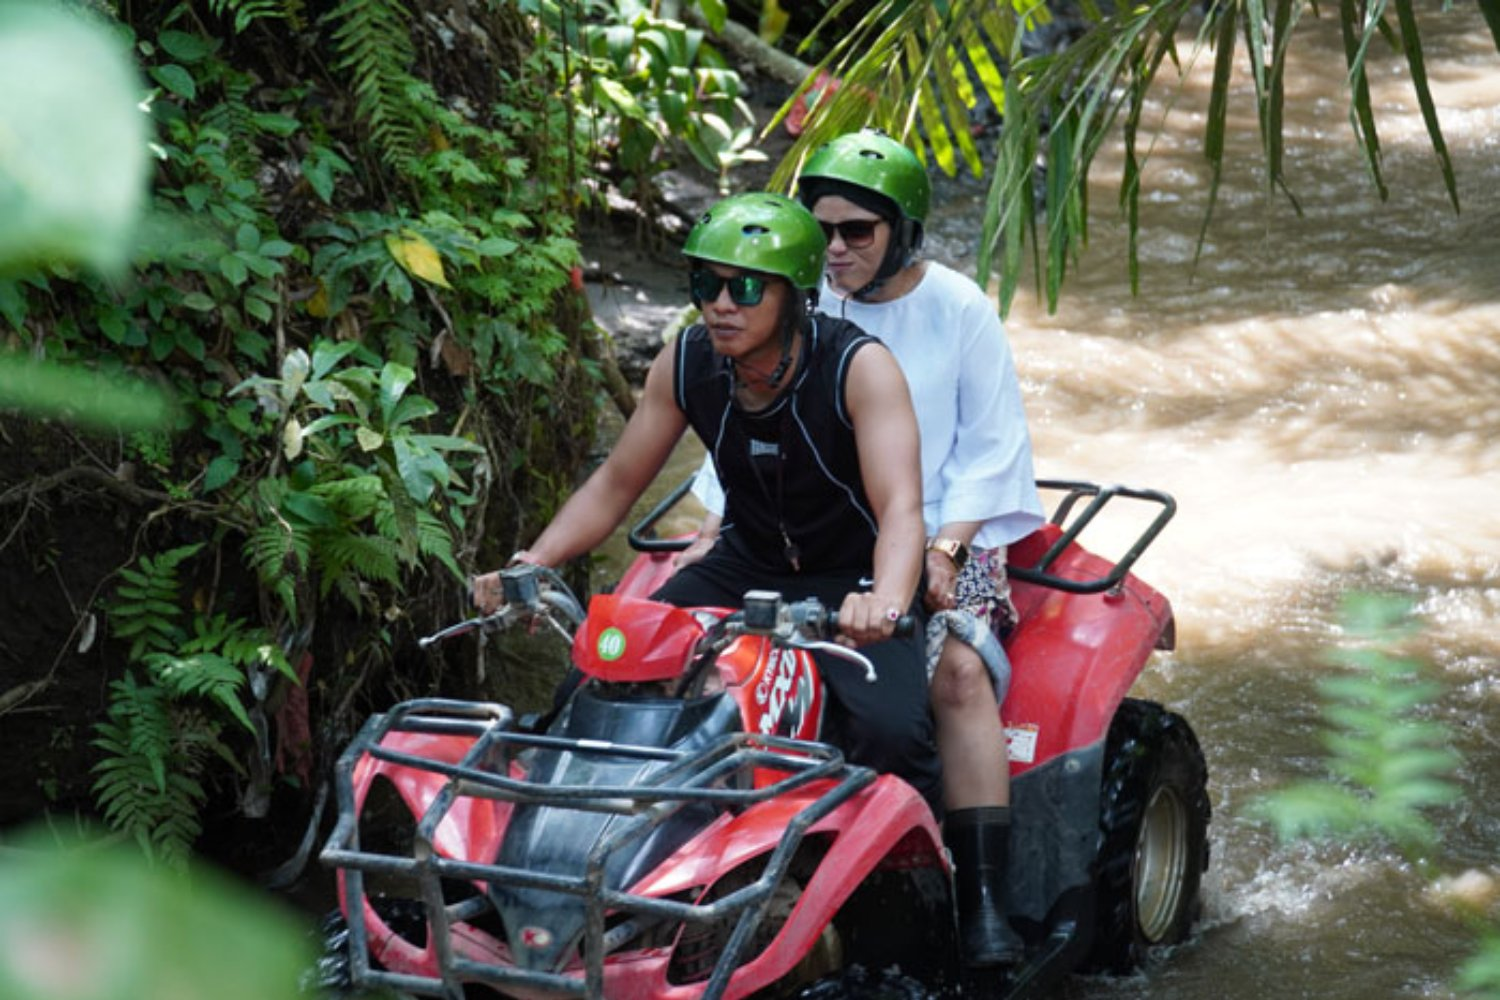 Riding ATV on River Track